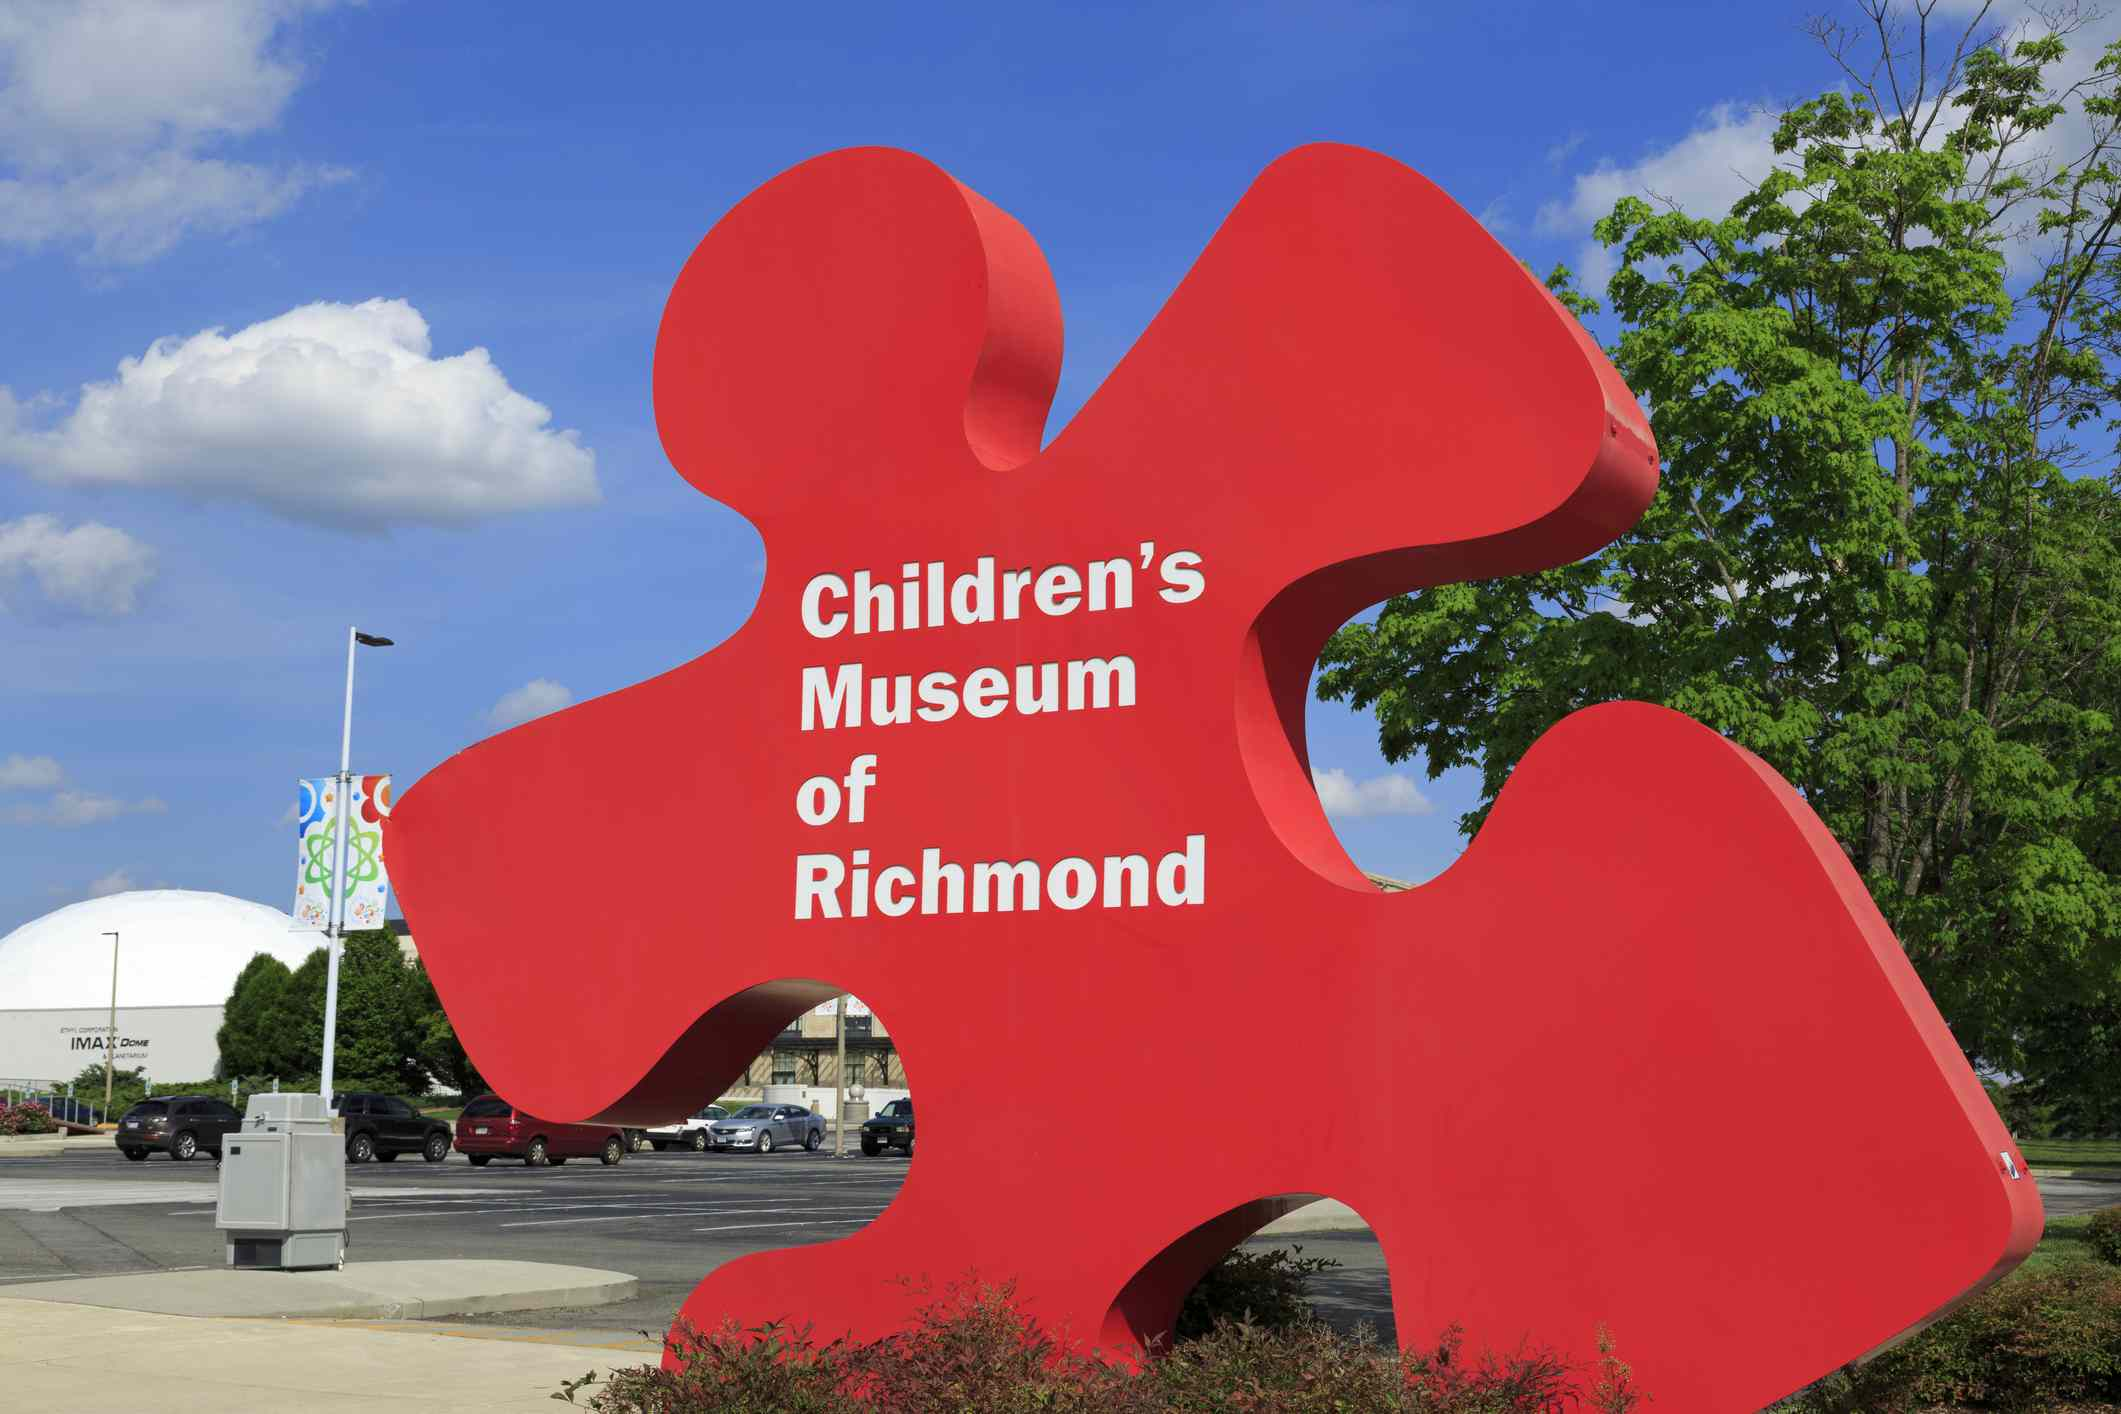 red puzzle piece-shaped sculpture that says